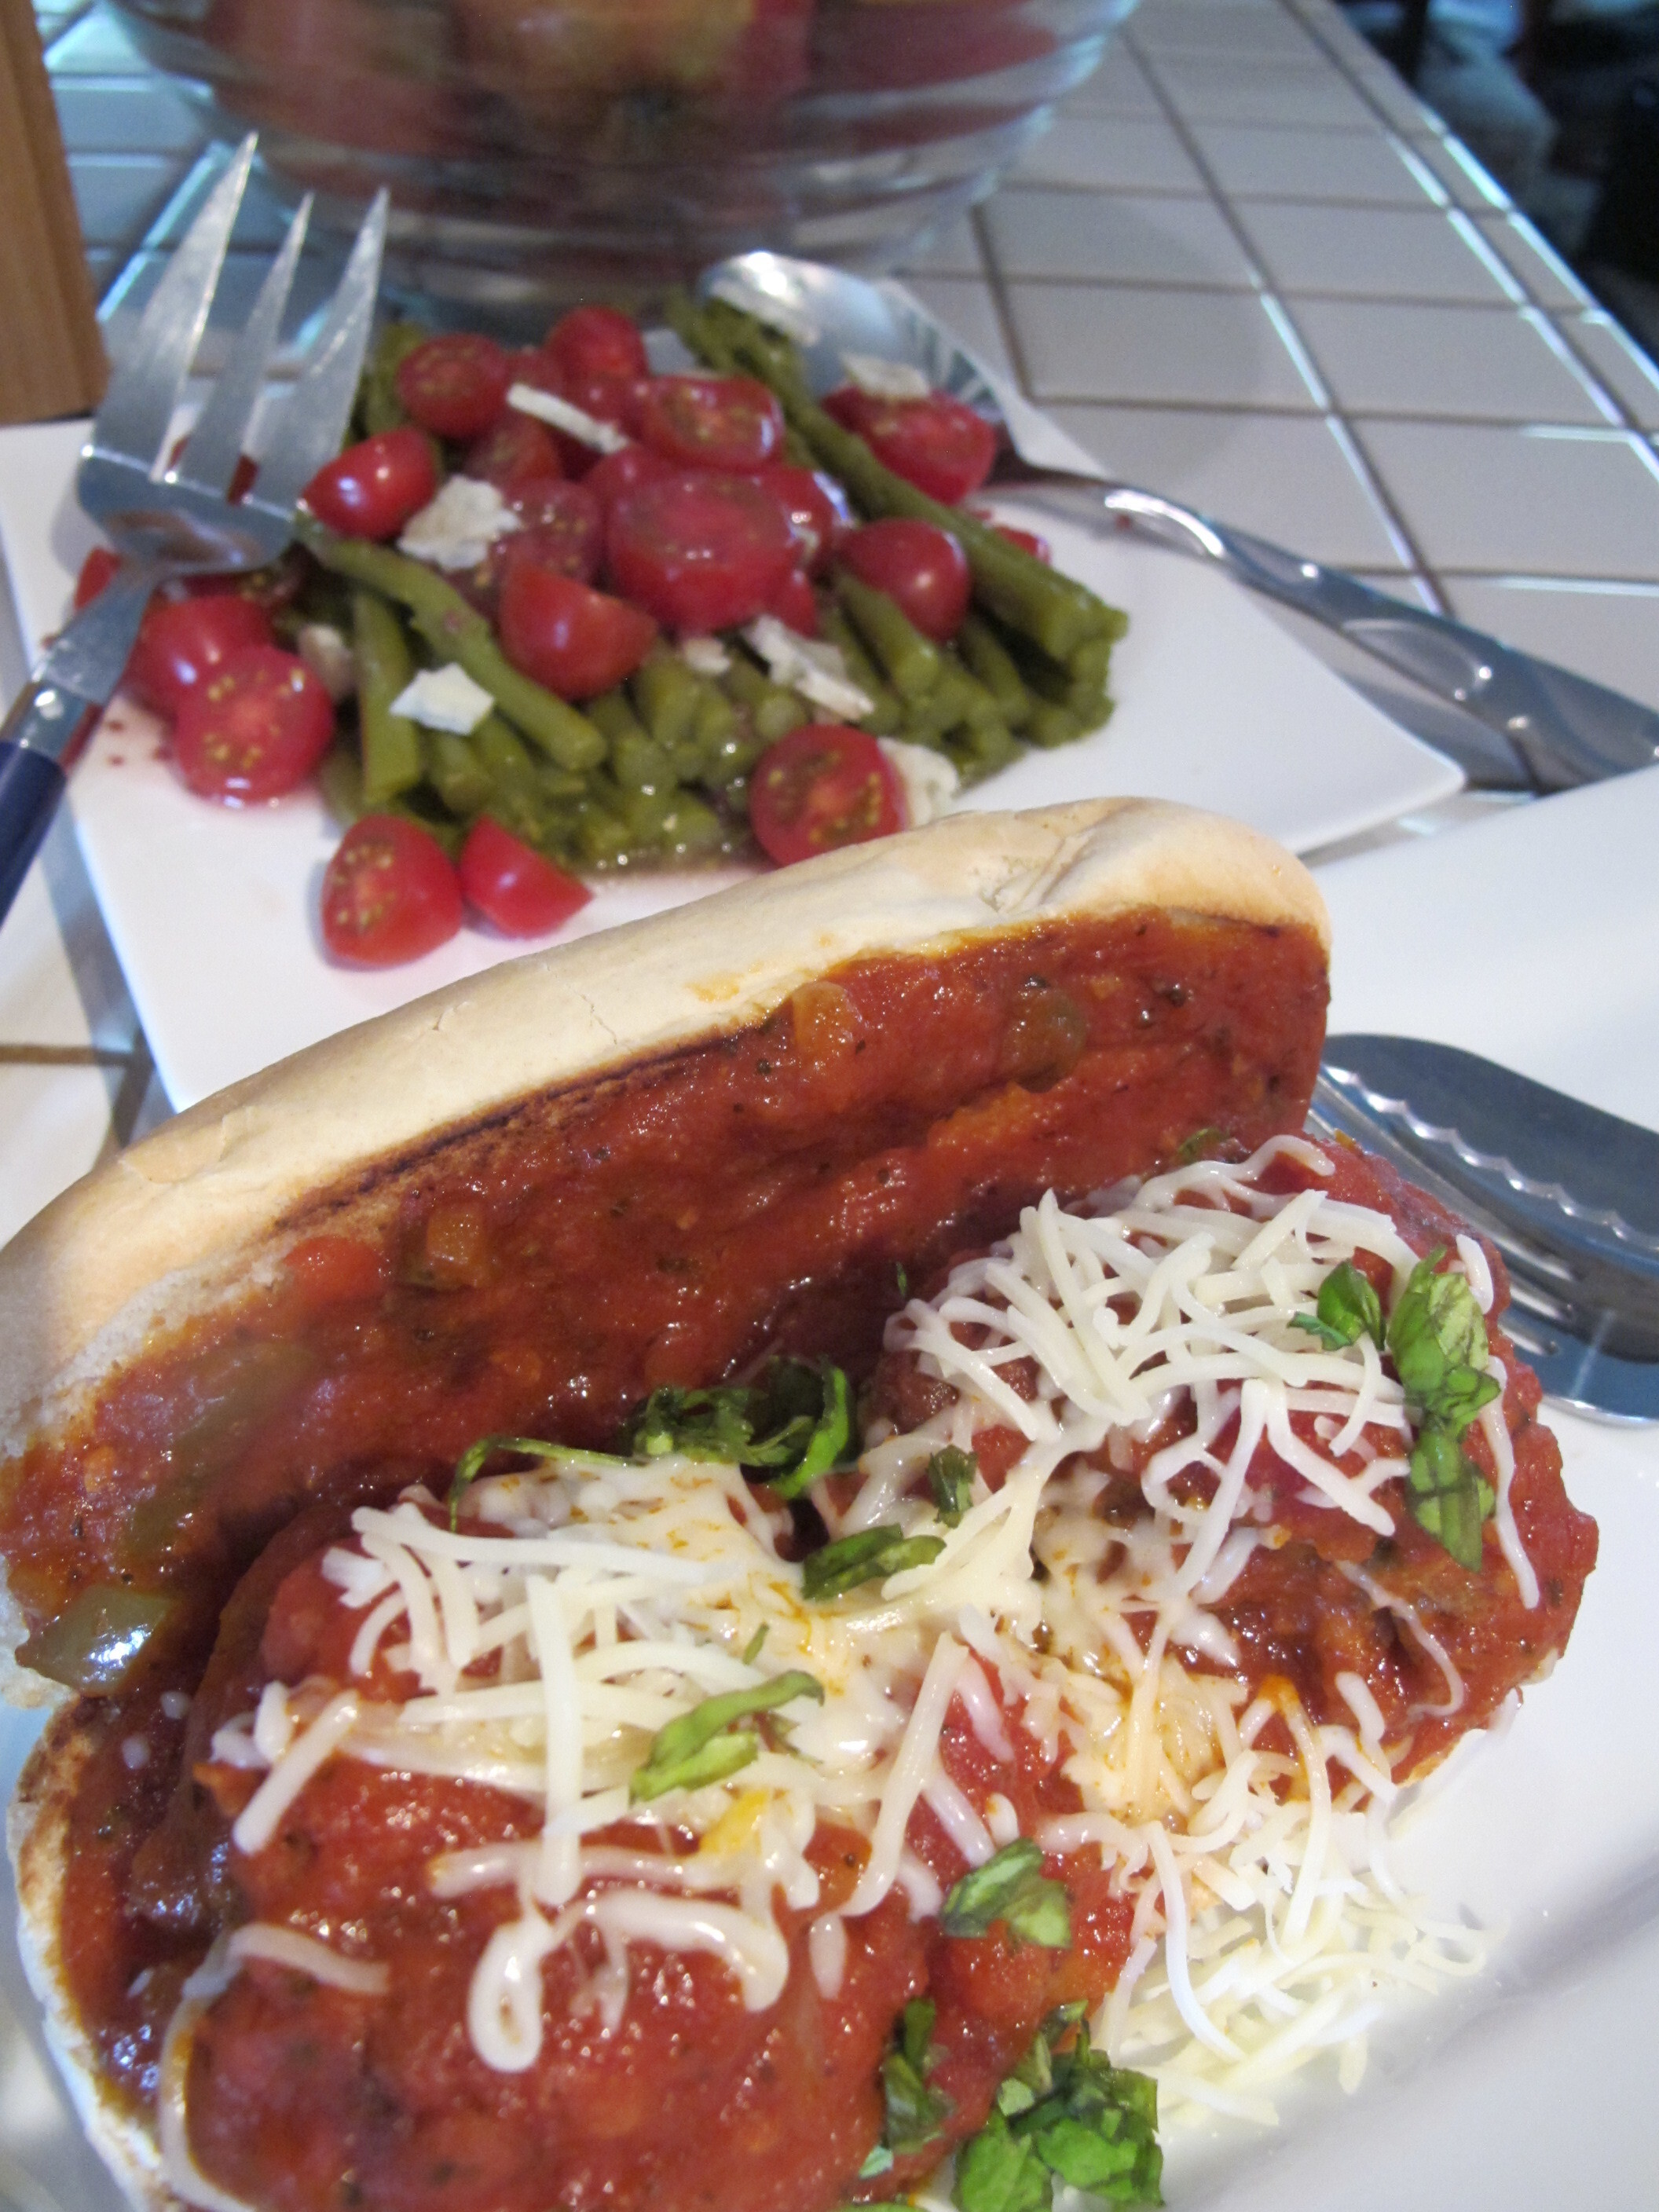 Smells are so powerful and evocative, sometimes stronger than visual cues. – Will Cotton and Italian Meatball Sandwich